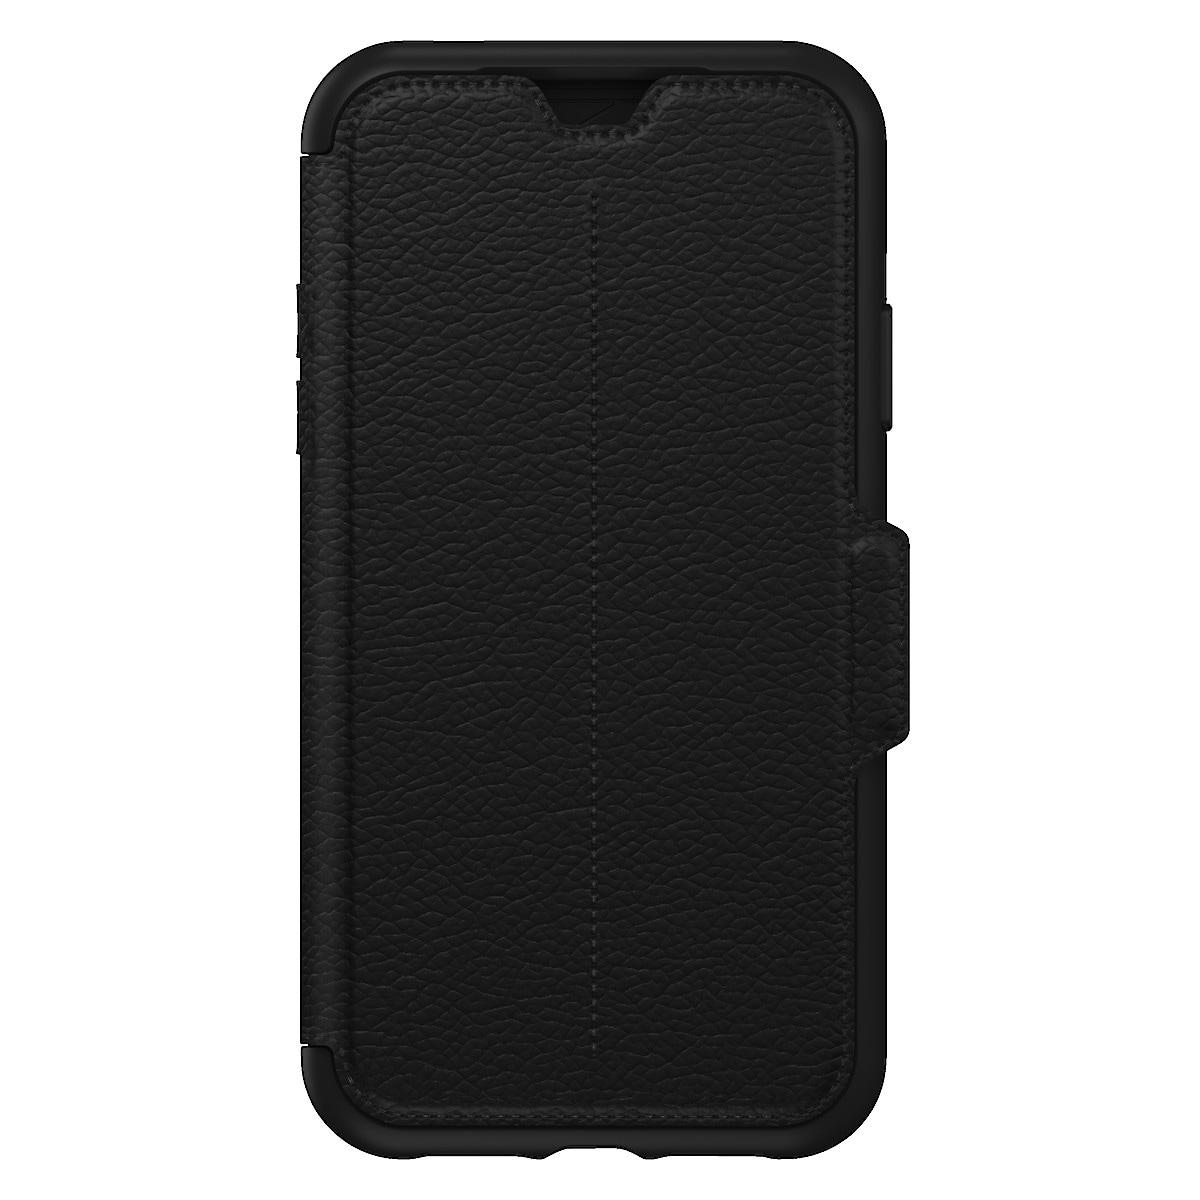 Otterbox Strada Wallet Case for iPhone XR